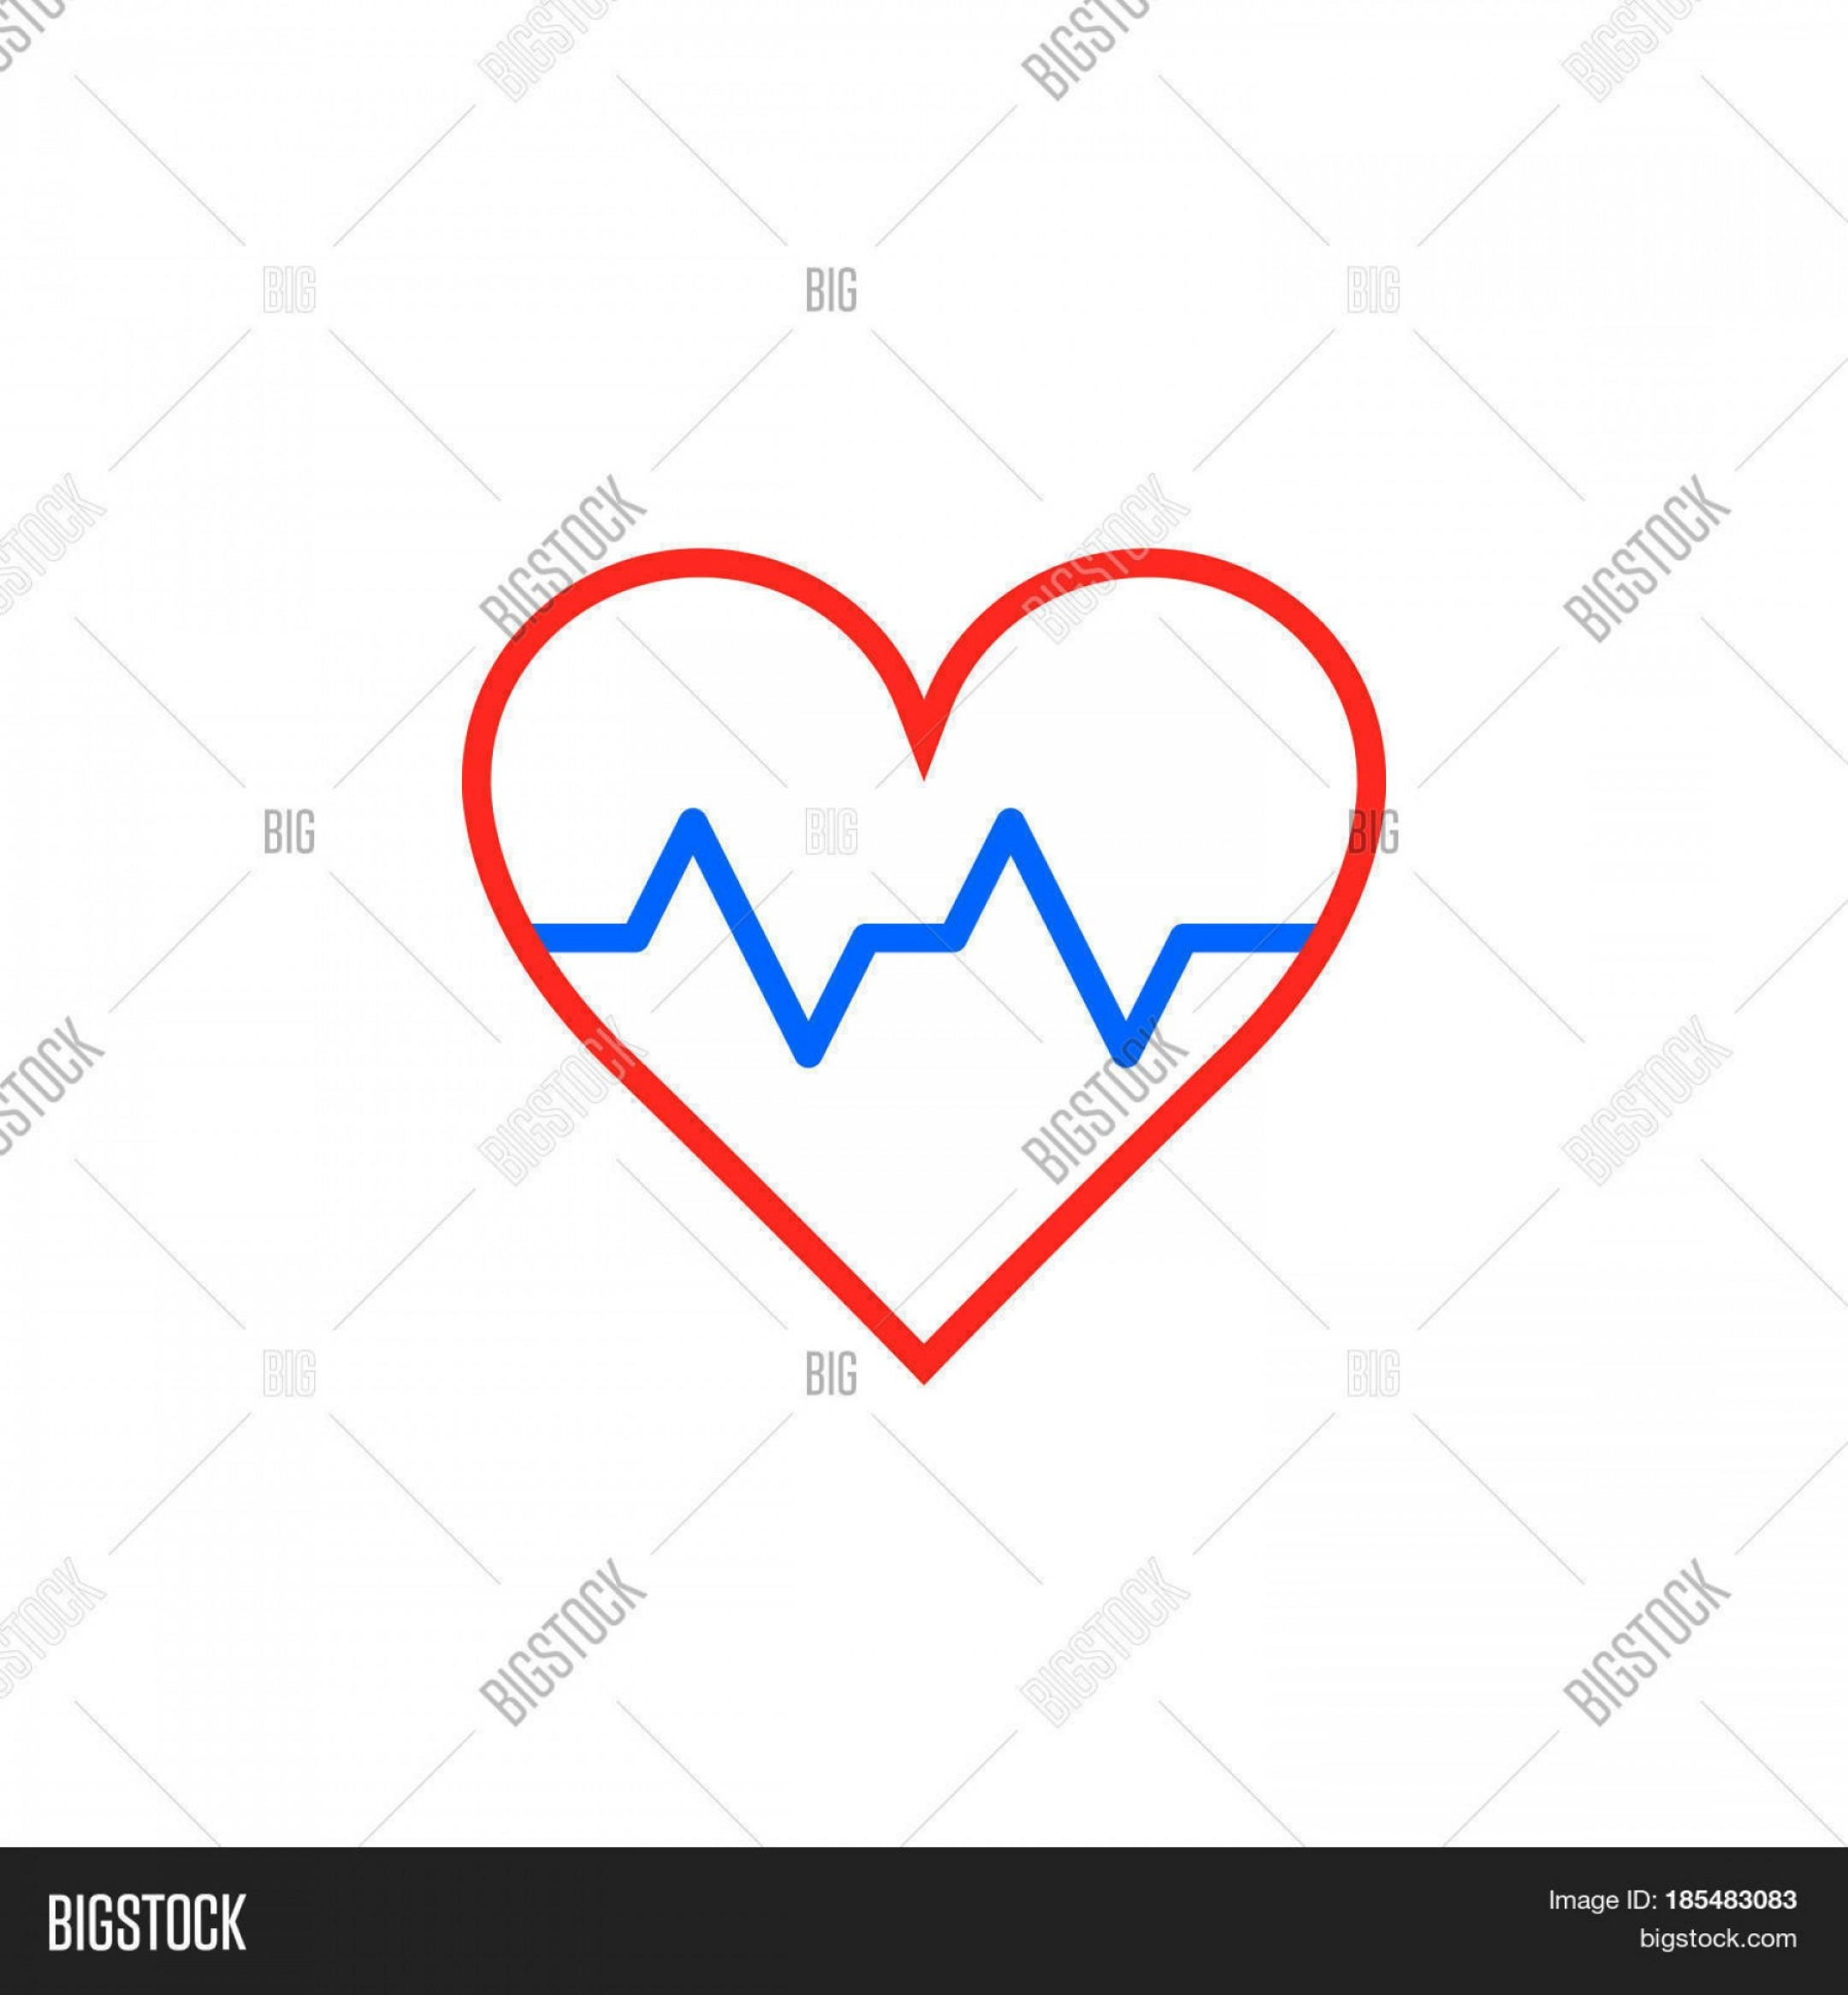 Stock Vector Logo: Stock Vector Heartbeat Symbol Heart Beat Pulse Line Icon Outline Vector Logo Illustration Linear Pictogram Isolated On White